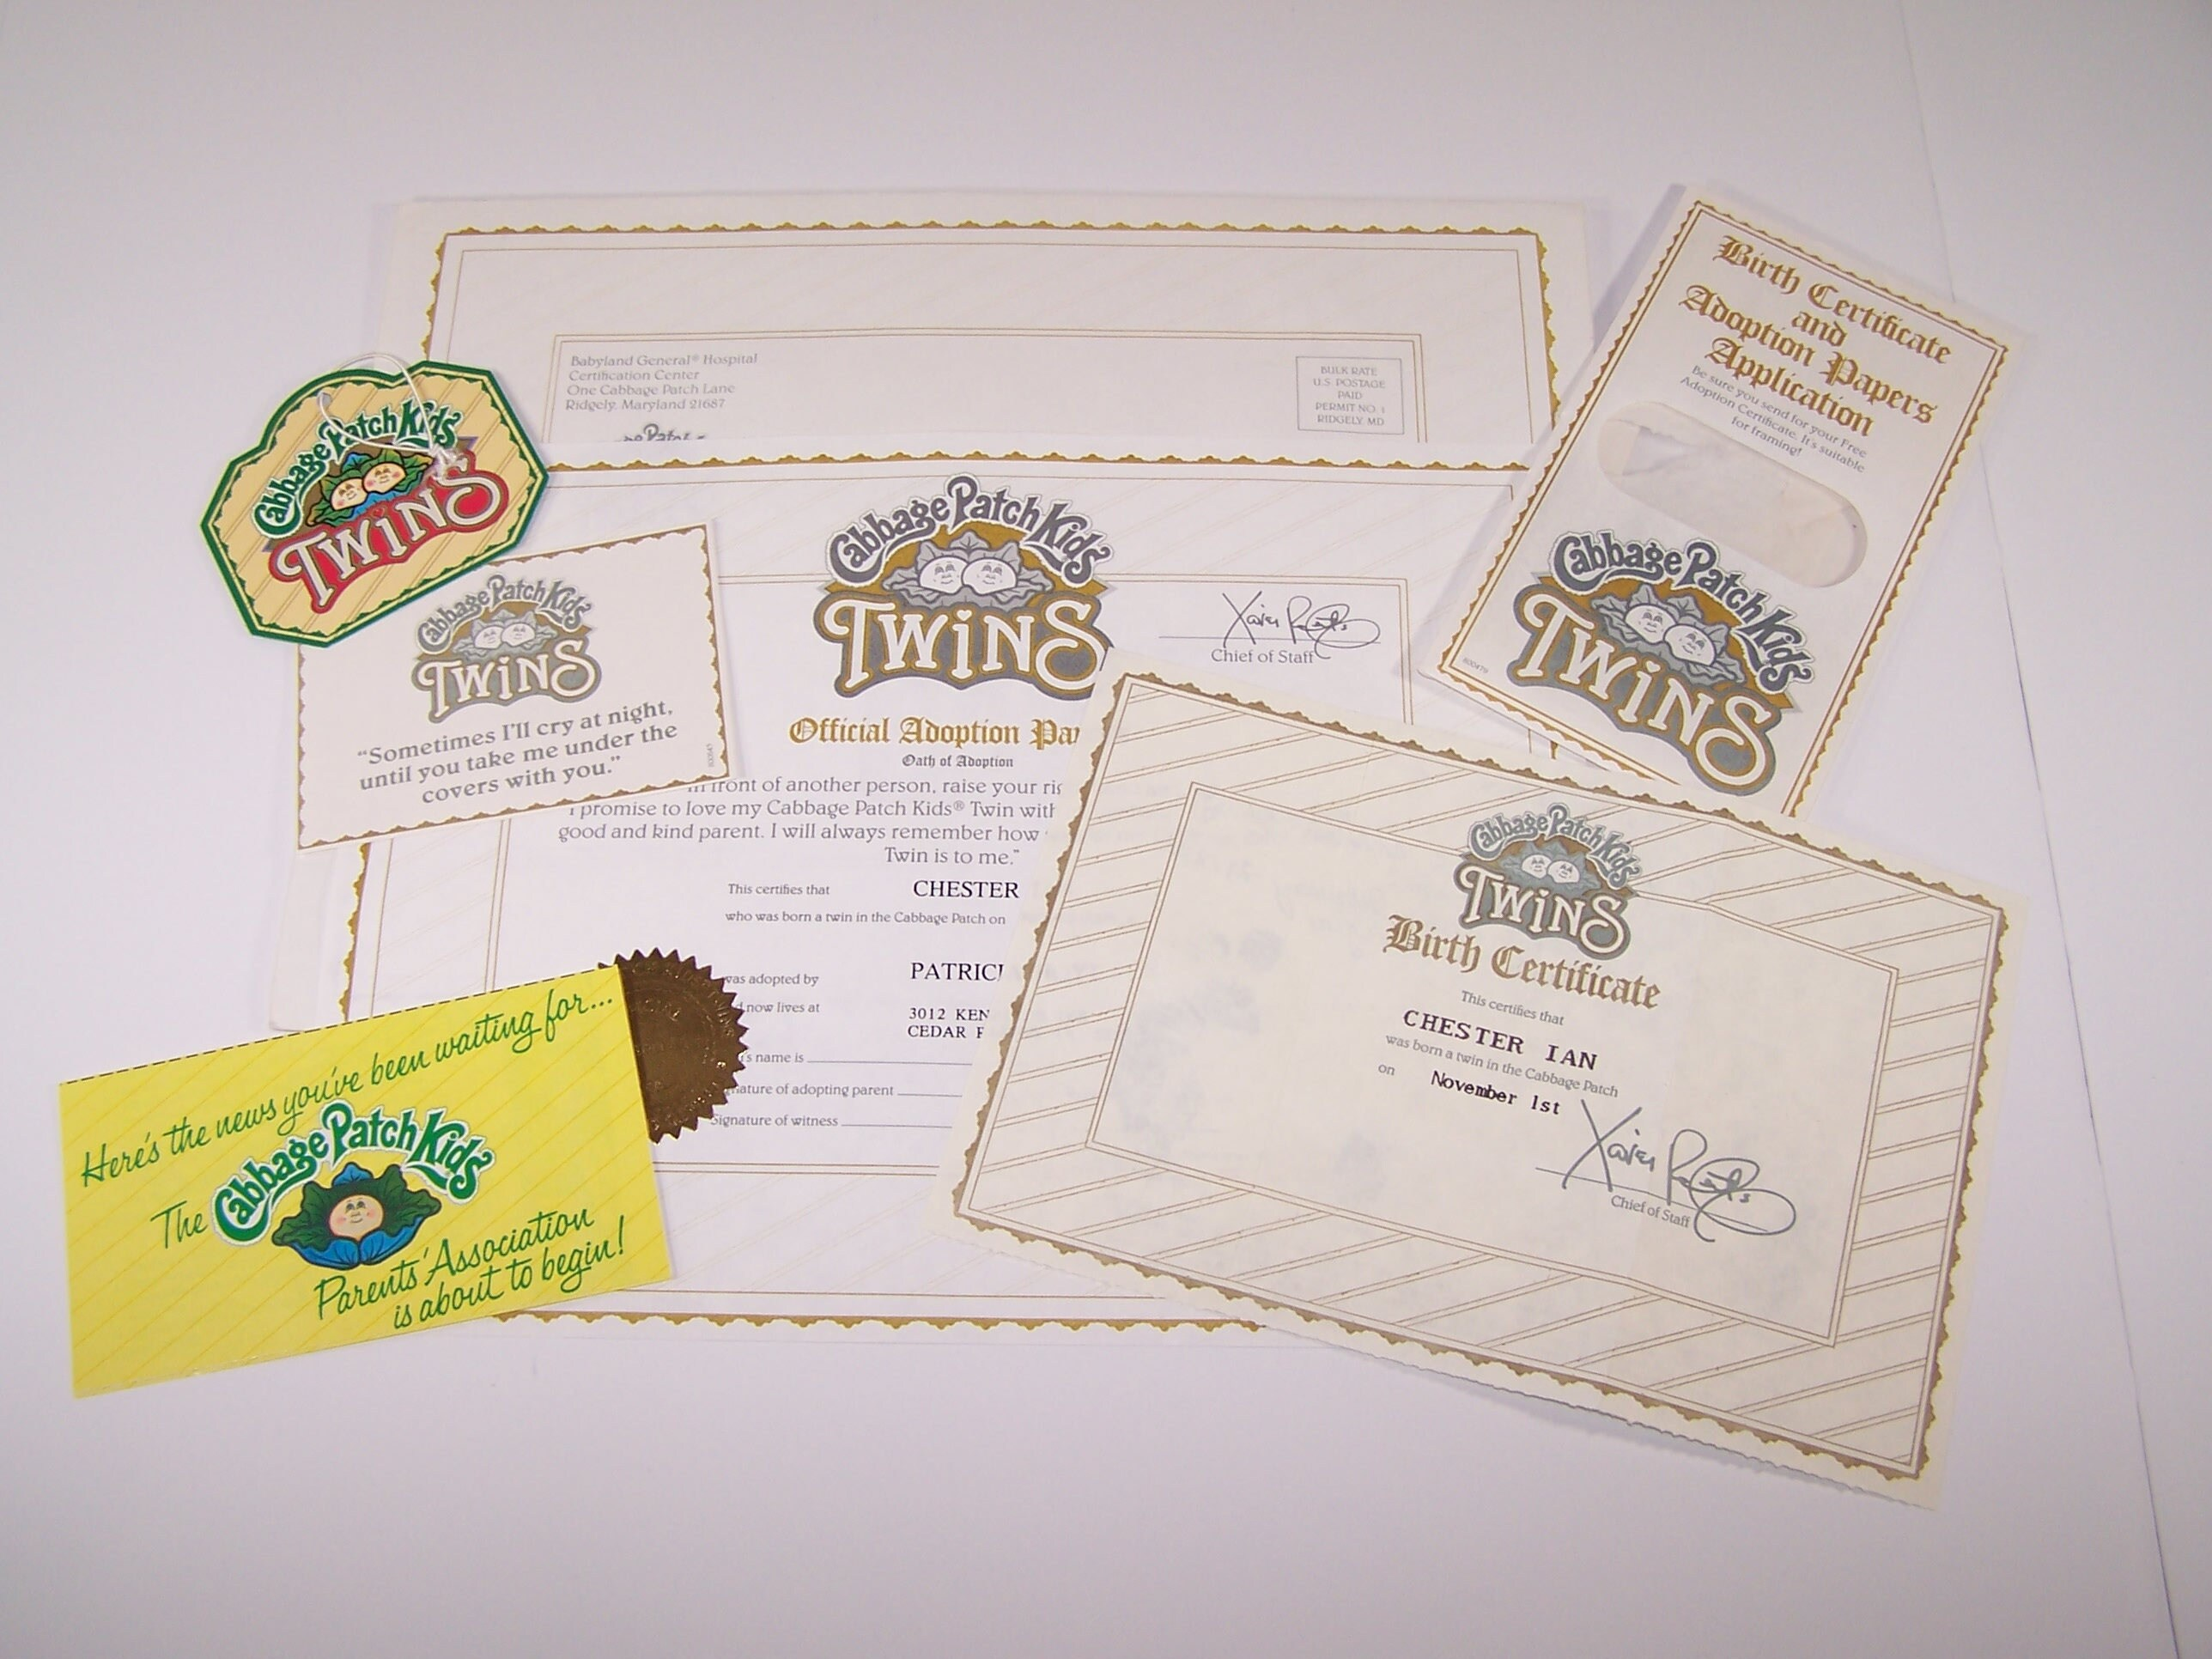 Authentic Cabbage Patch Kids Birth Certificate Footprints - Twin Chester Ian